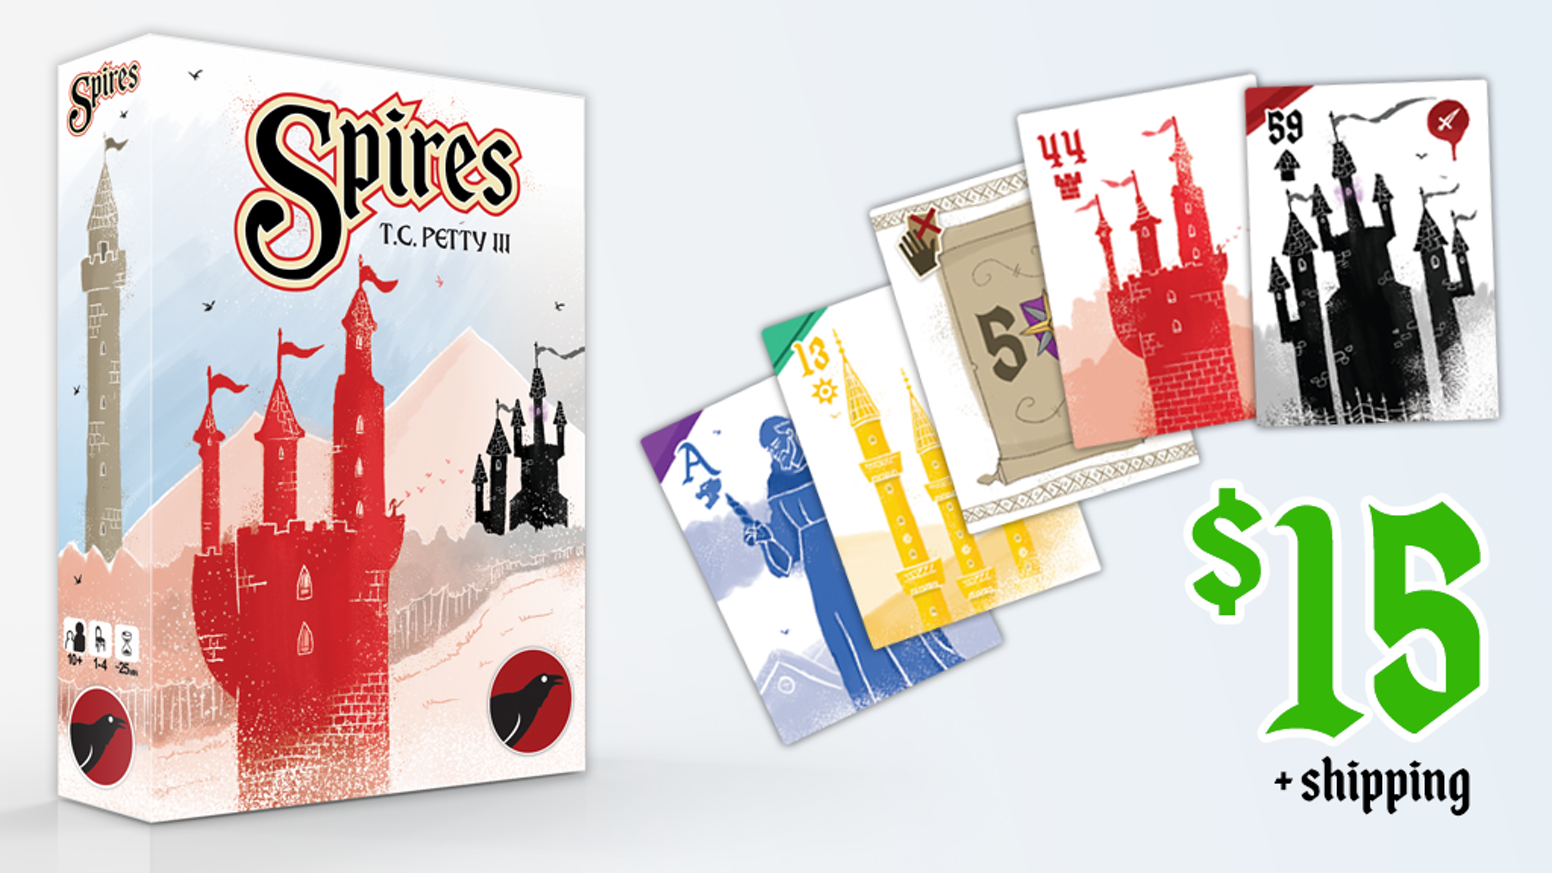 Answer the royal decree! Build Spires high - but not too high! - in this card game for 1-4 players by TC Petty III. Playable in ~25 min